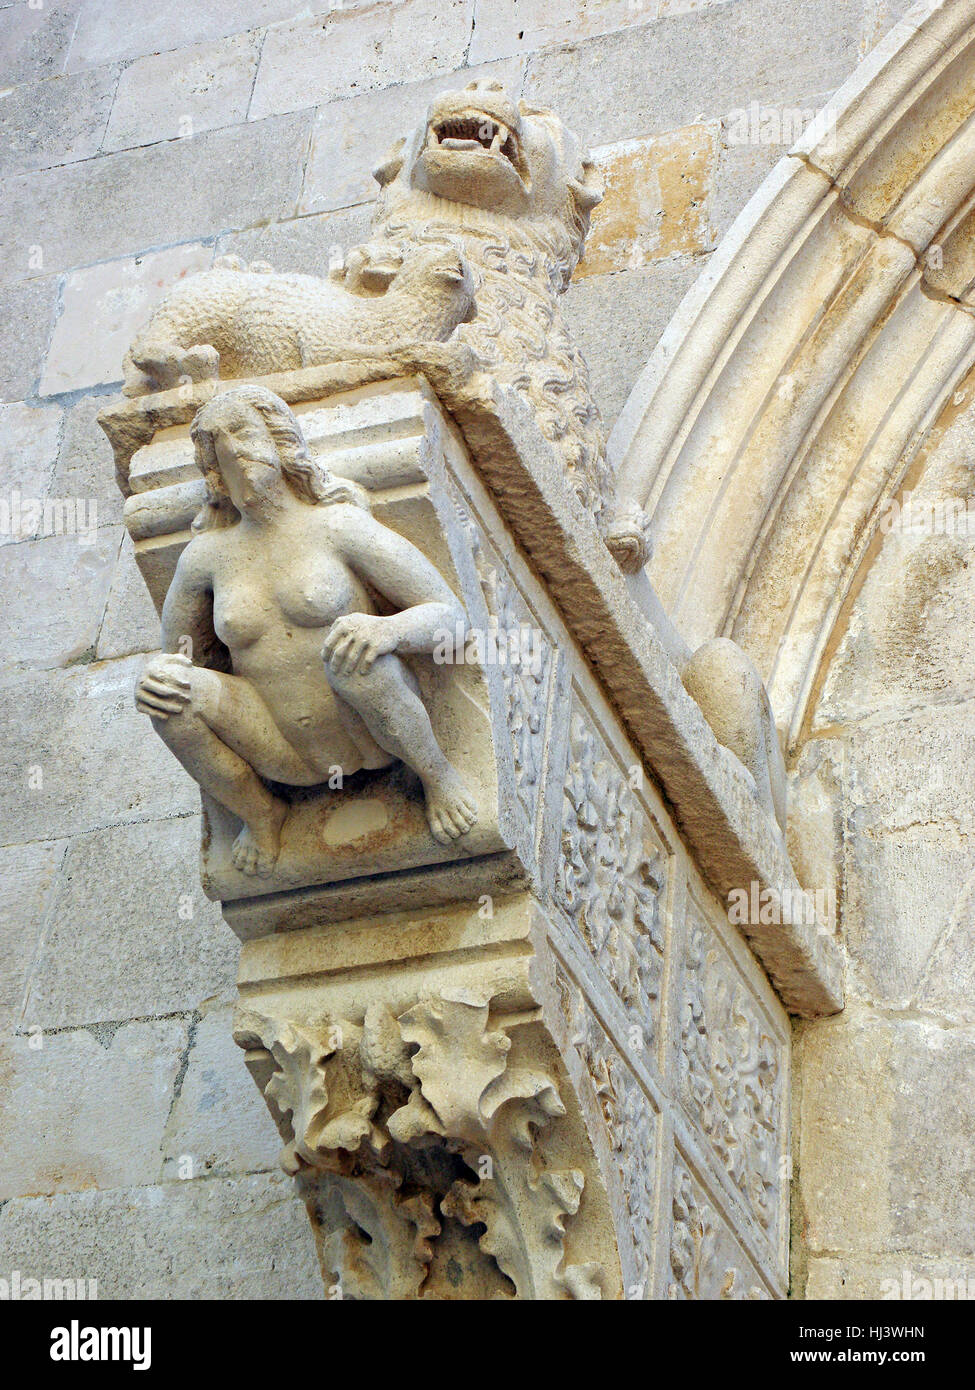 Korcula ancient artwork and craftmanship details,Croatia,Europe,5 - Stock Image